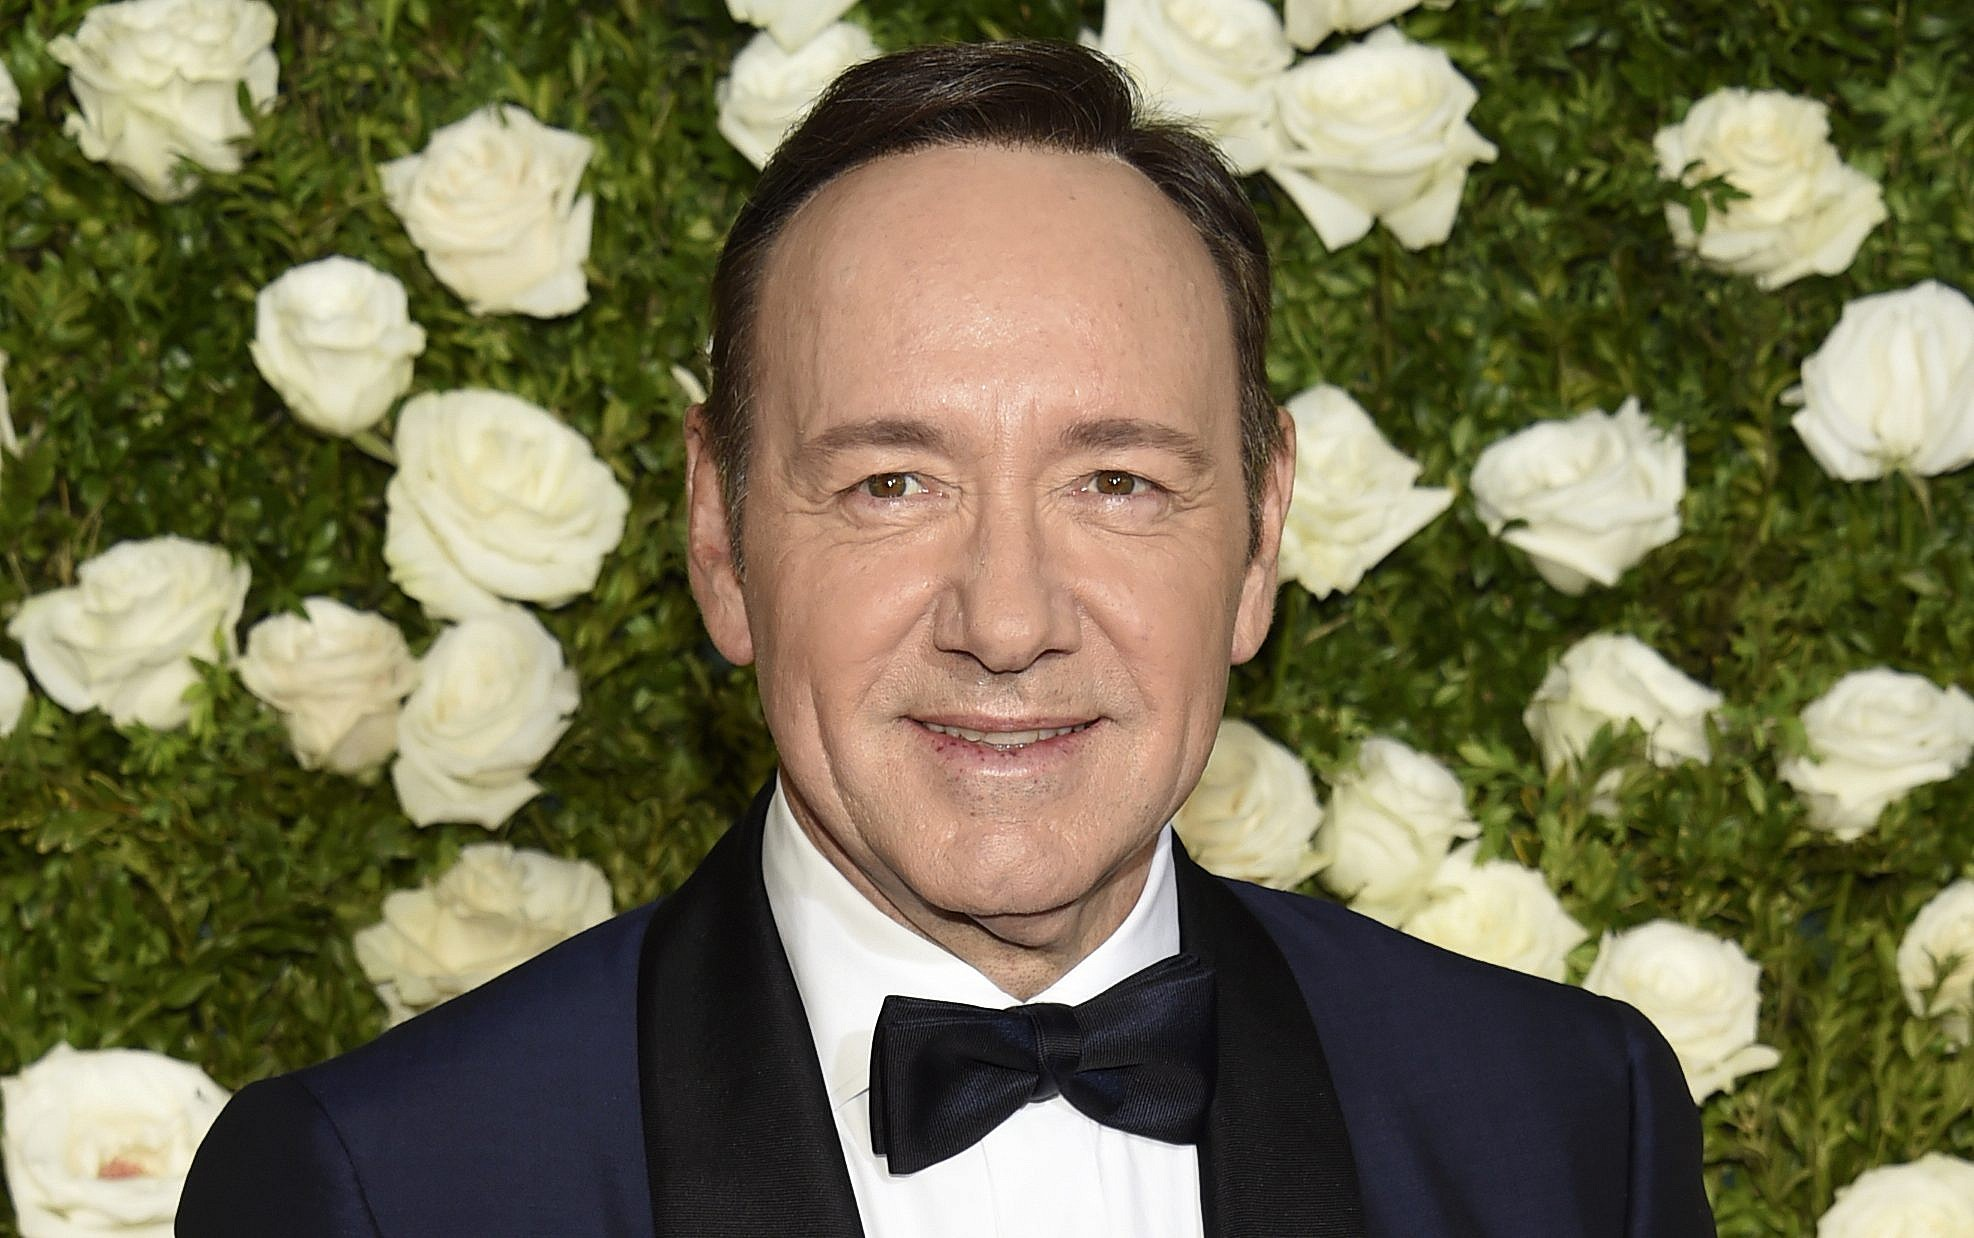 Man accuses Kevin Spacey of making unwanted advances